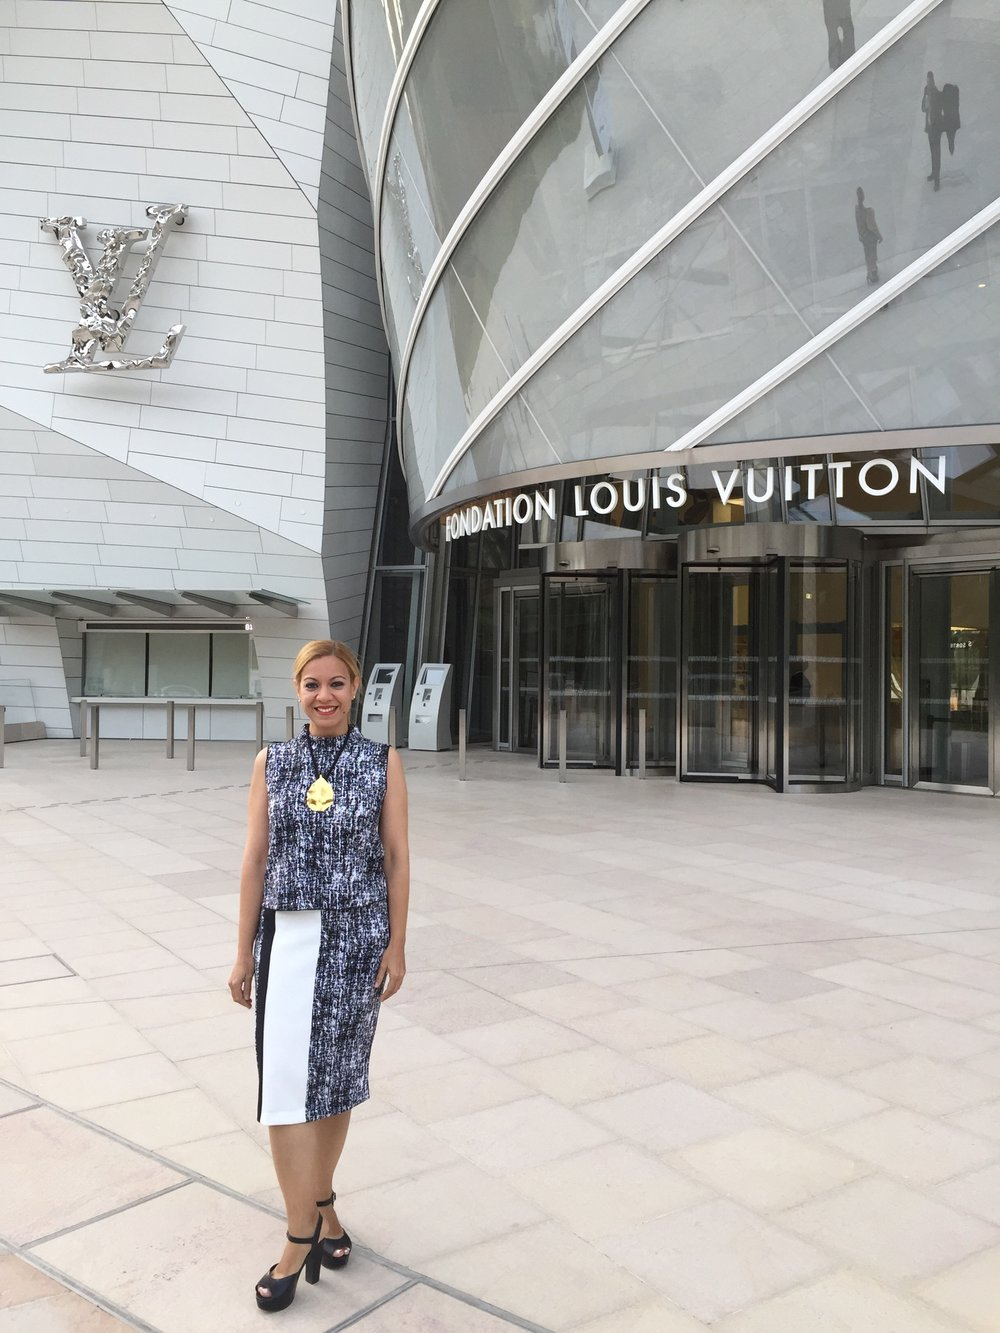 Larissa at the Louis Vuitton Foundation in the outsides of Paris.